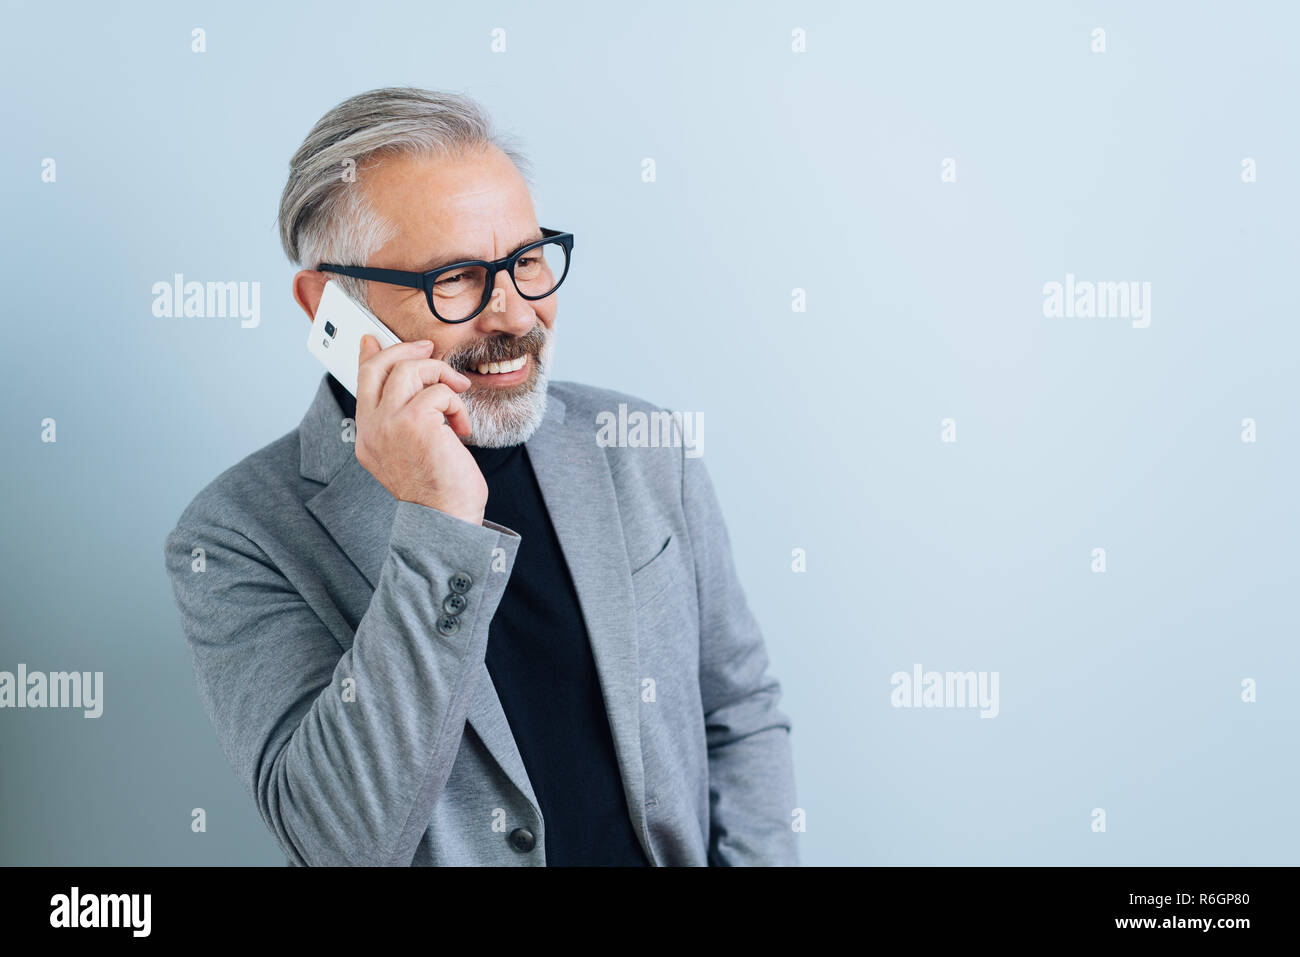 Businessman with greying beard and glasses standing smiling as he chats on a mobile phone against a white wall with copy space - Stock Image